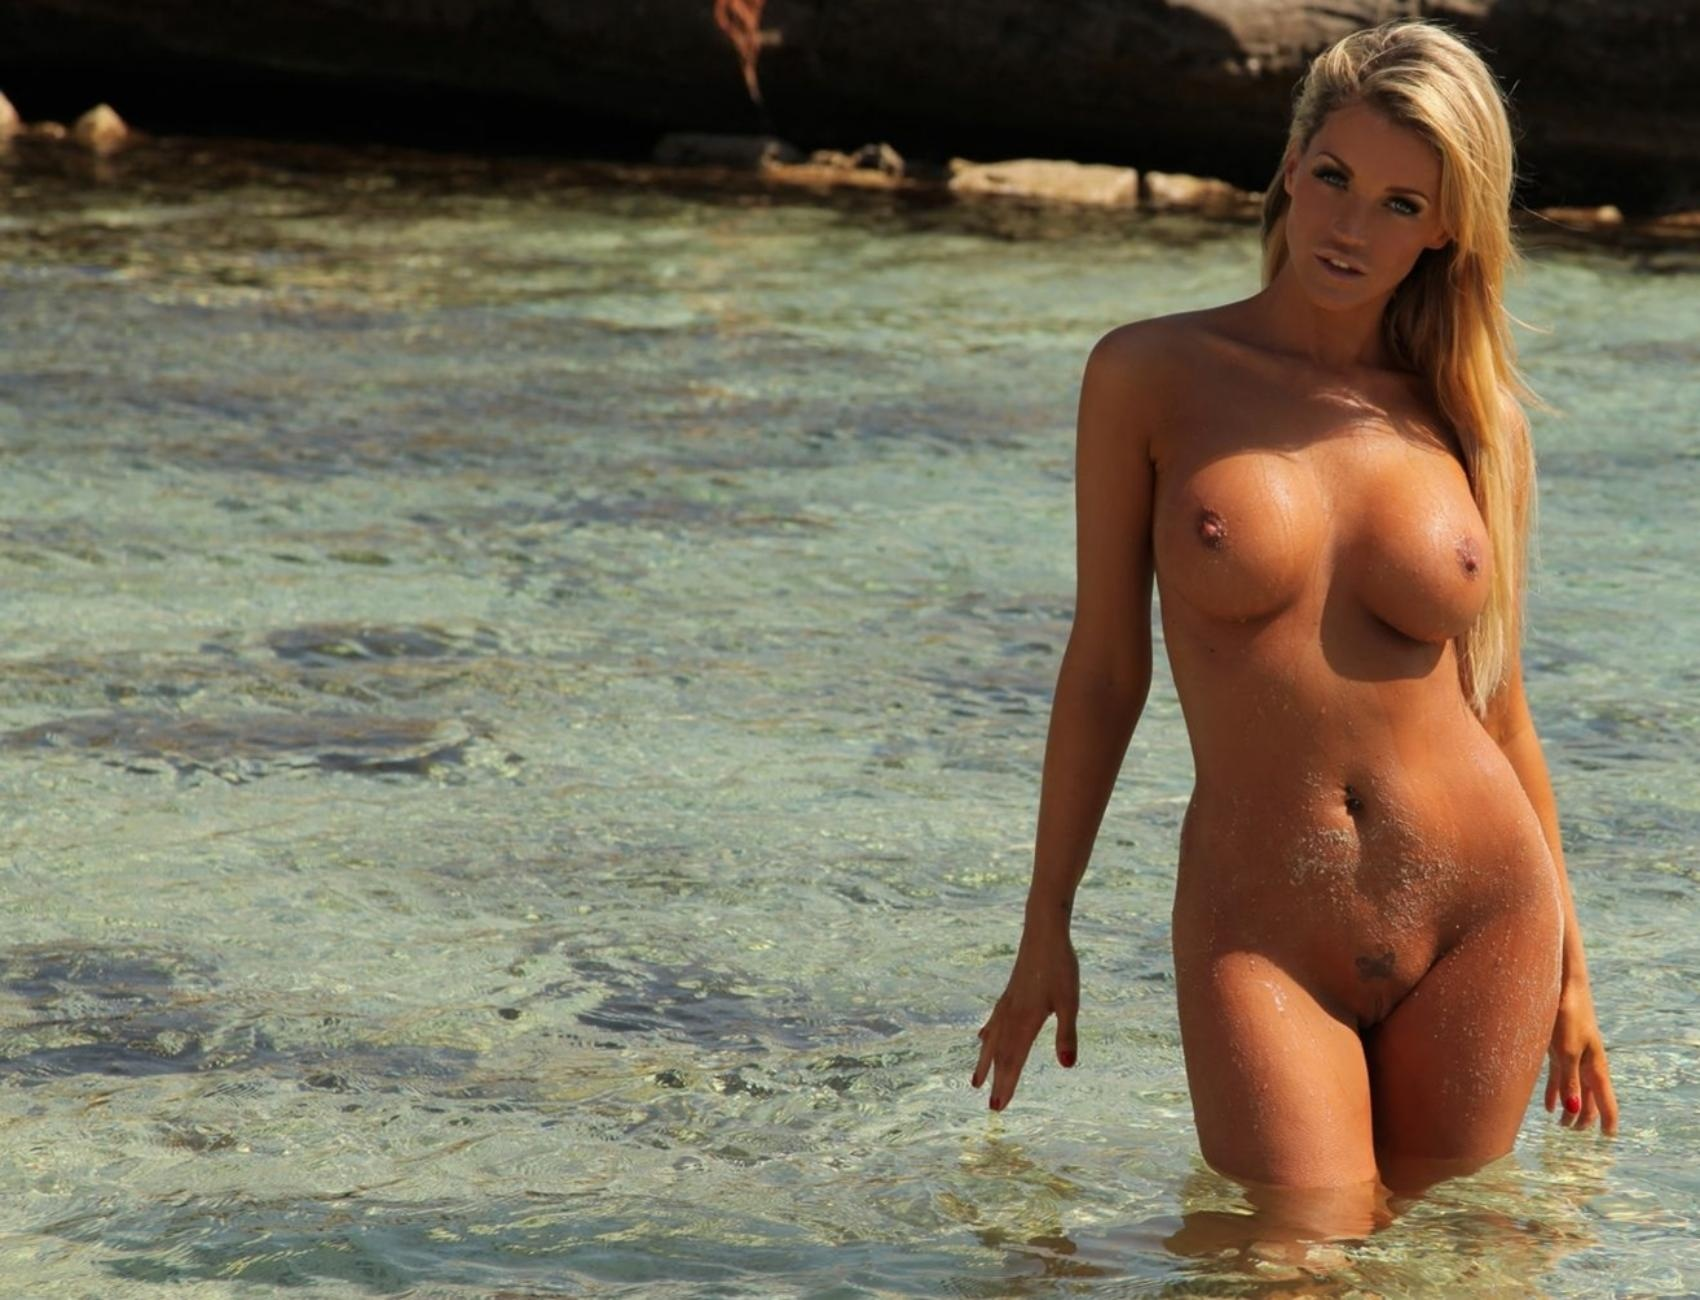 Wallpaper Holly Henderson, Nude, Naked, Beach, Big Tits -1402